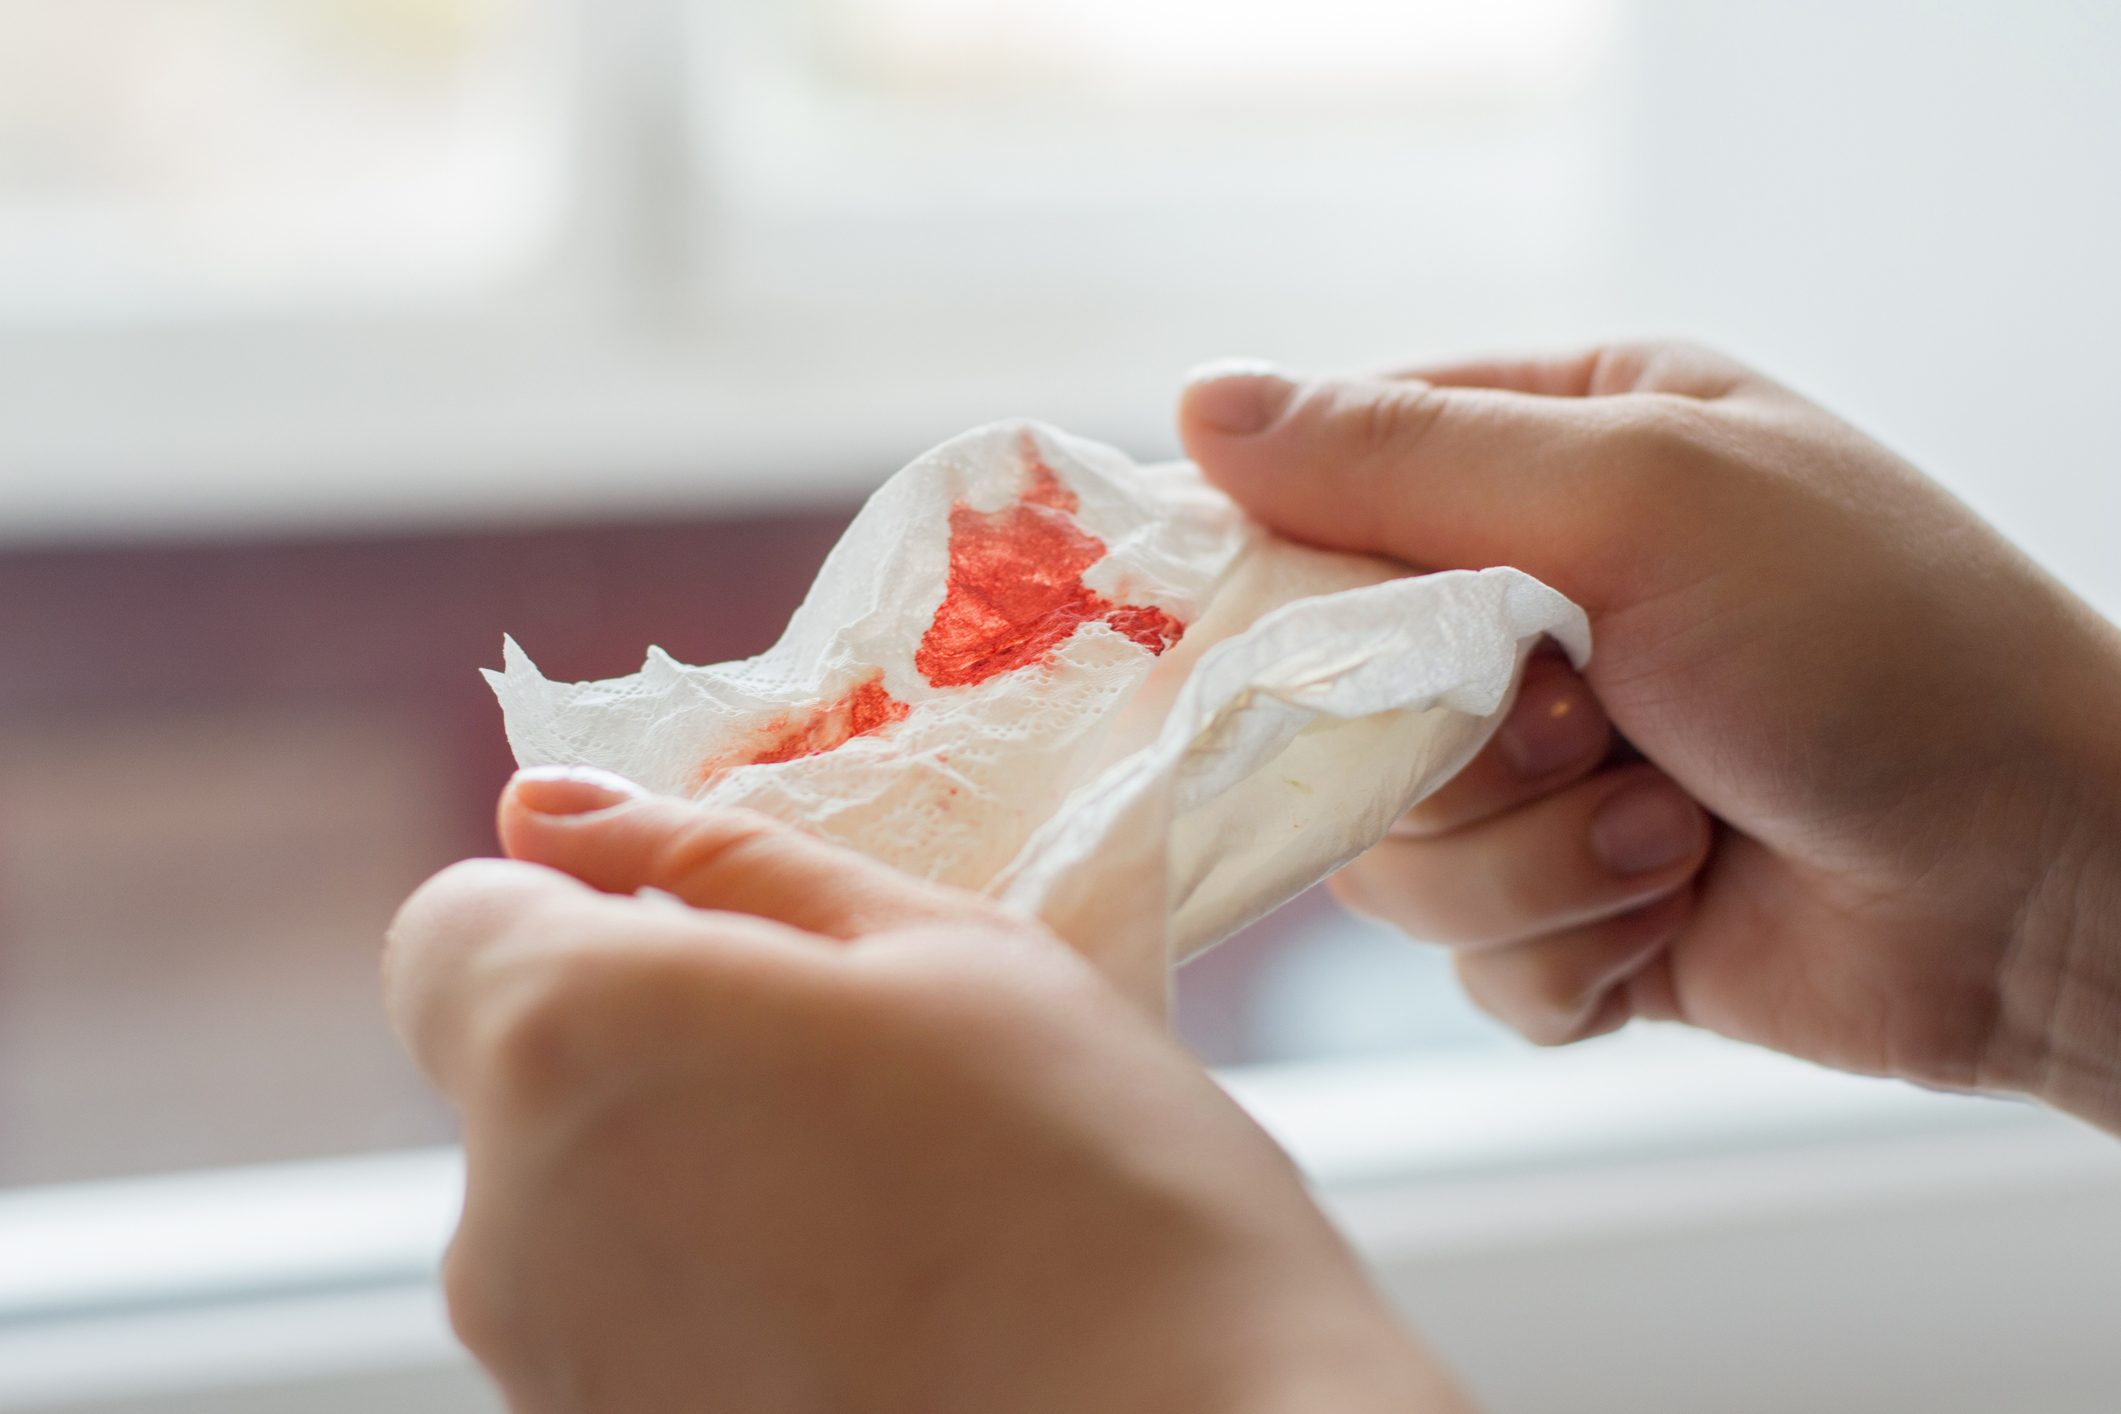 hands holding a bloody tissue